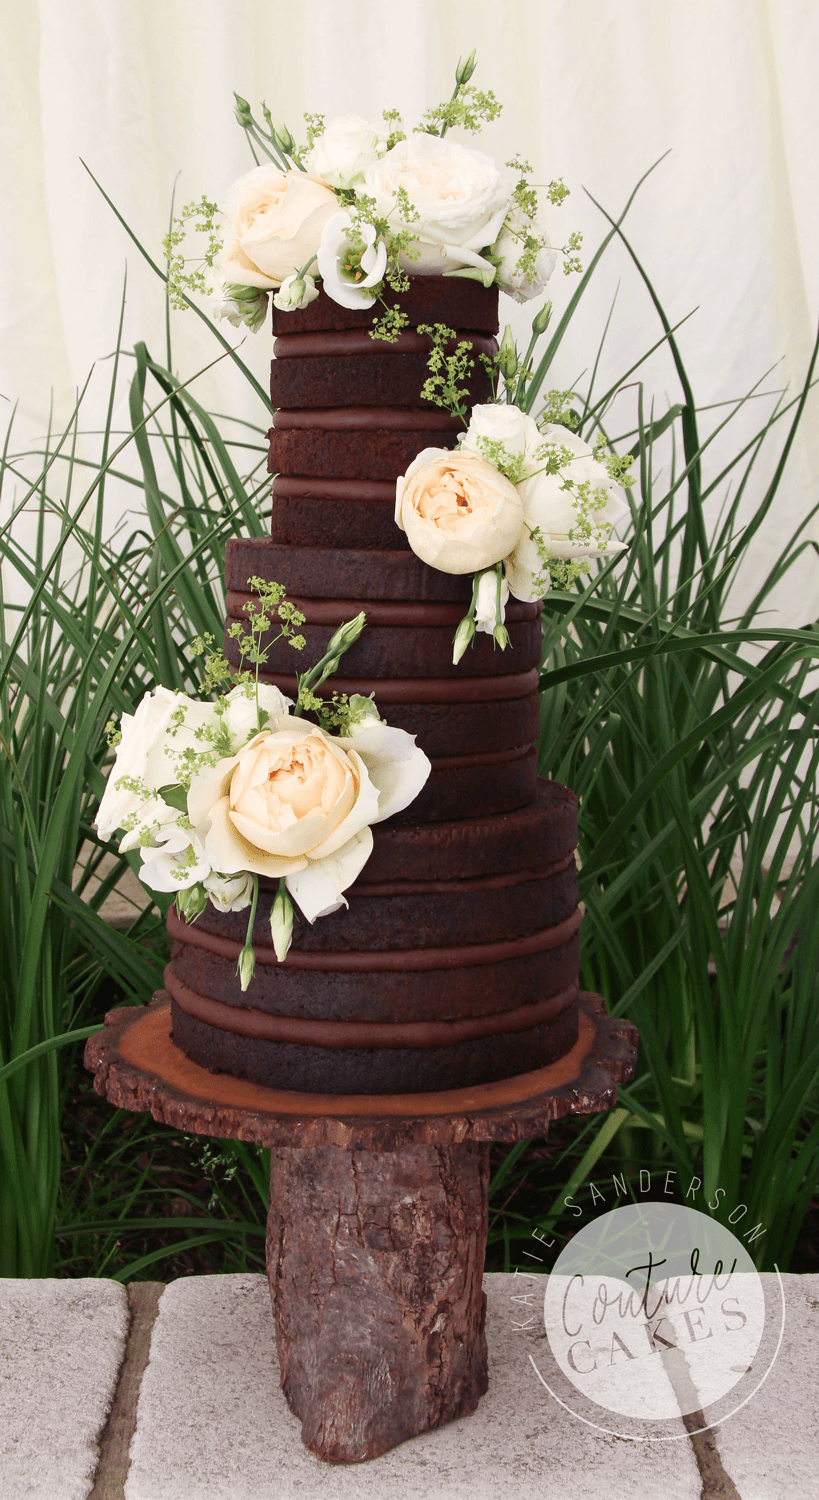 Naked Cake serves 90 portions, Price £295 plus flowers